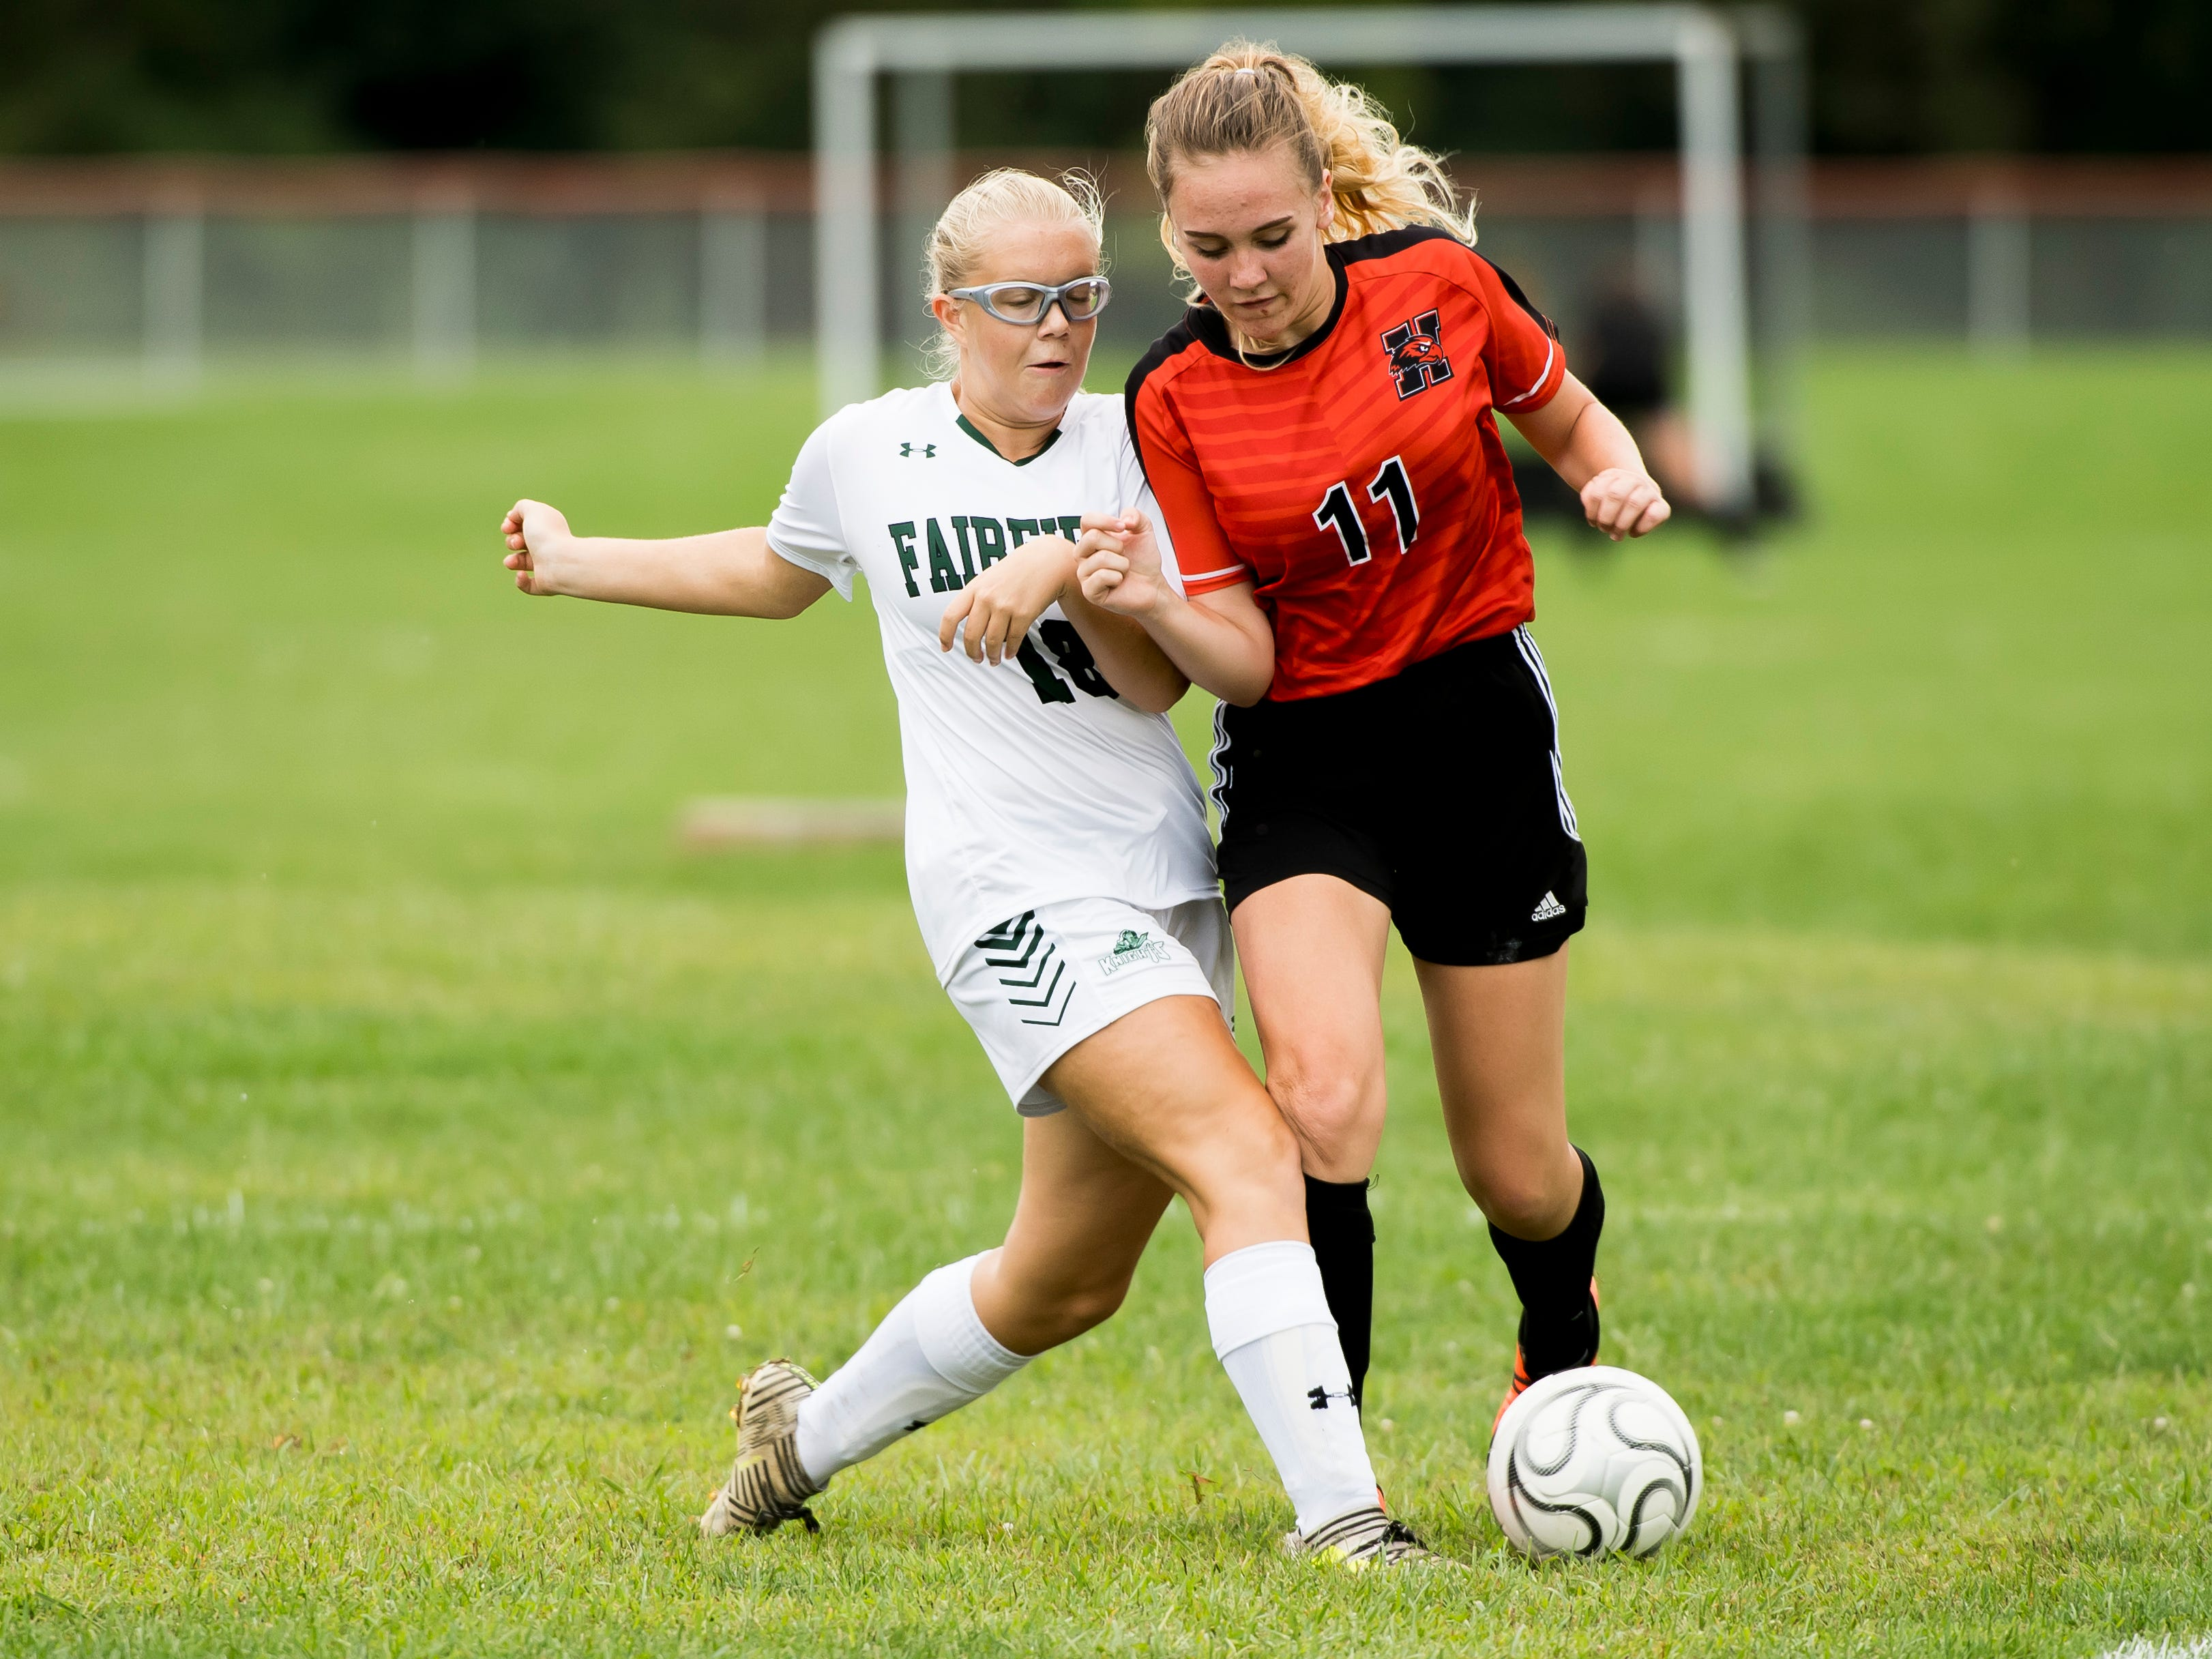 Hanover's Olivia Topper (11) battles for possession with Fairfield's Amelia Michaels during a game on Thursday, September 13, 2018. The Knights beat the Nighthawks 19-0.